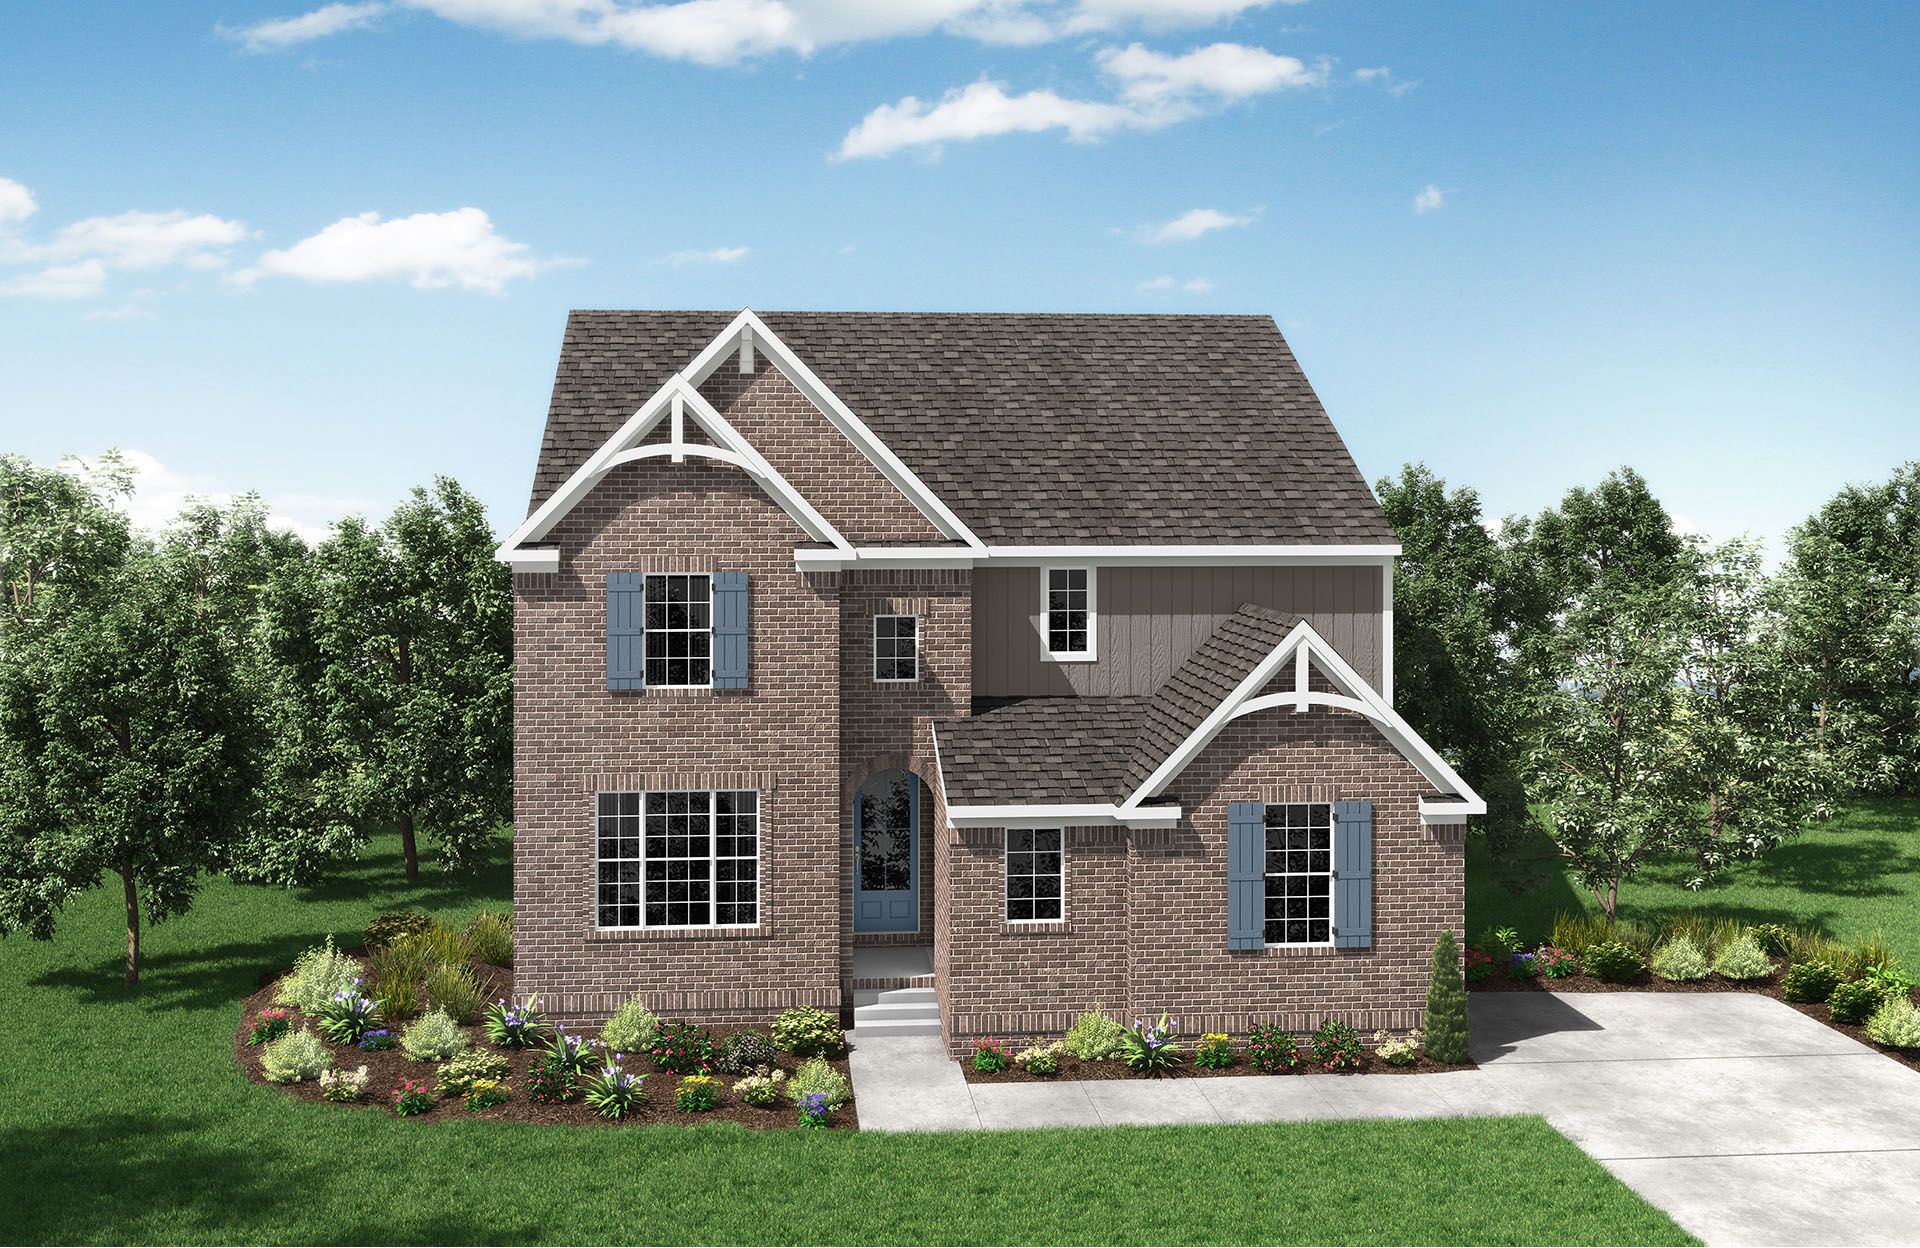 Single Family for Sale at River Oaks - The Manor - Brookston Lebanon, Tennessee 37090 United States